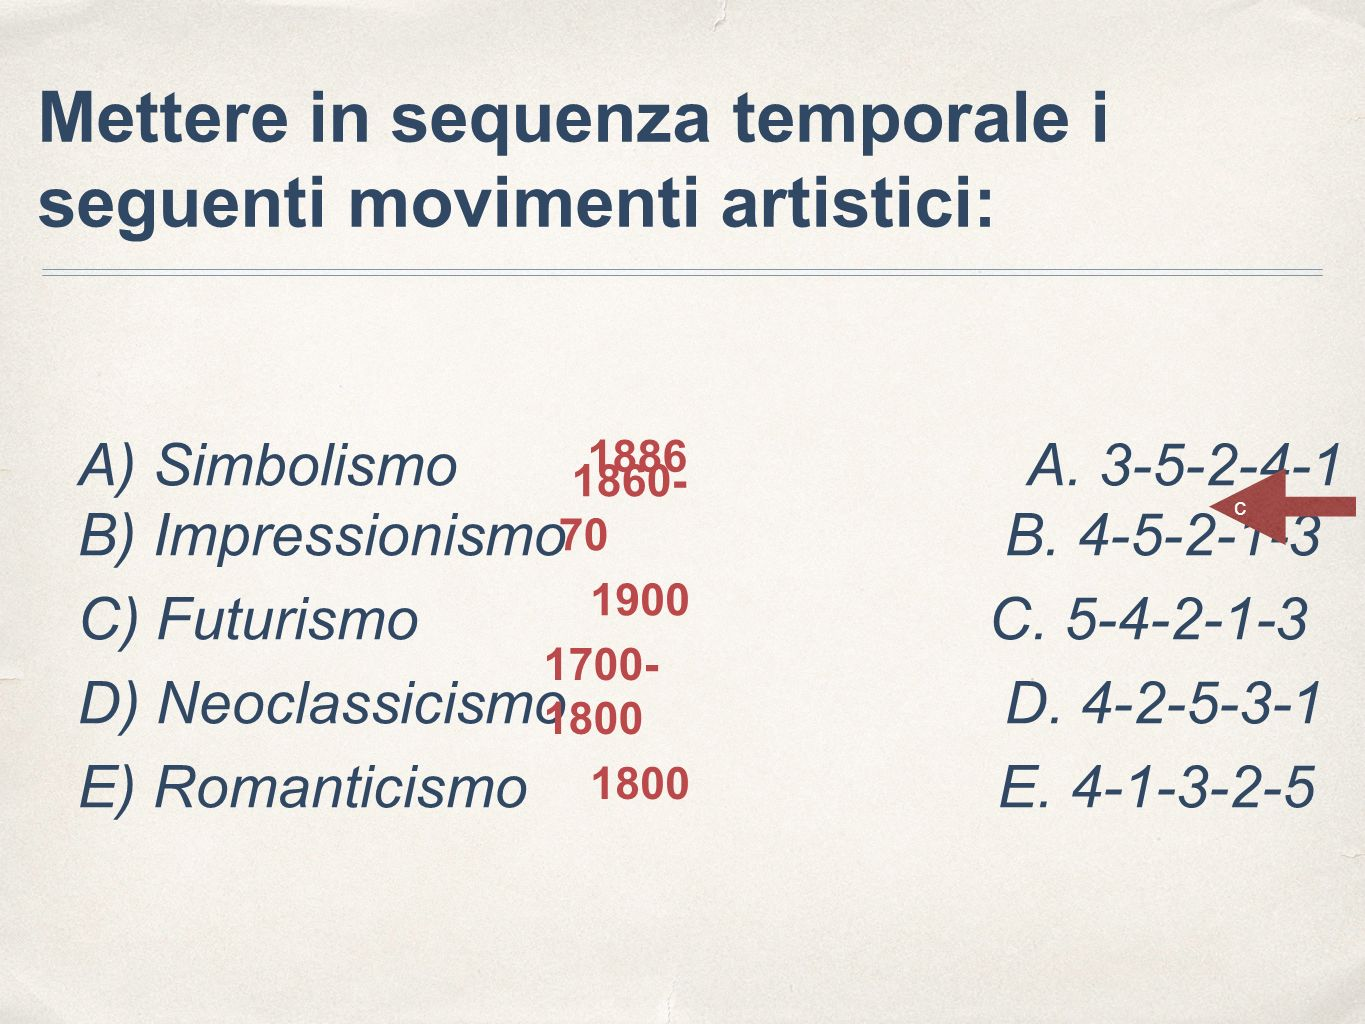 Mettere in sequenza temporale i seguenti movimenti artistici: